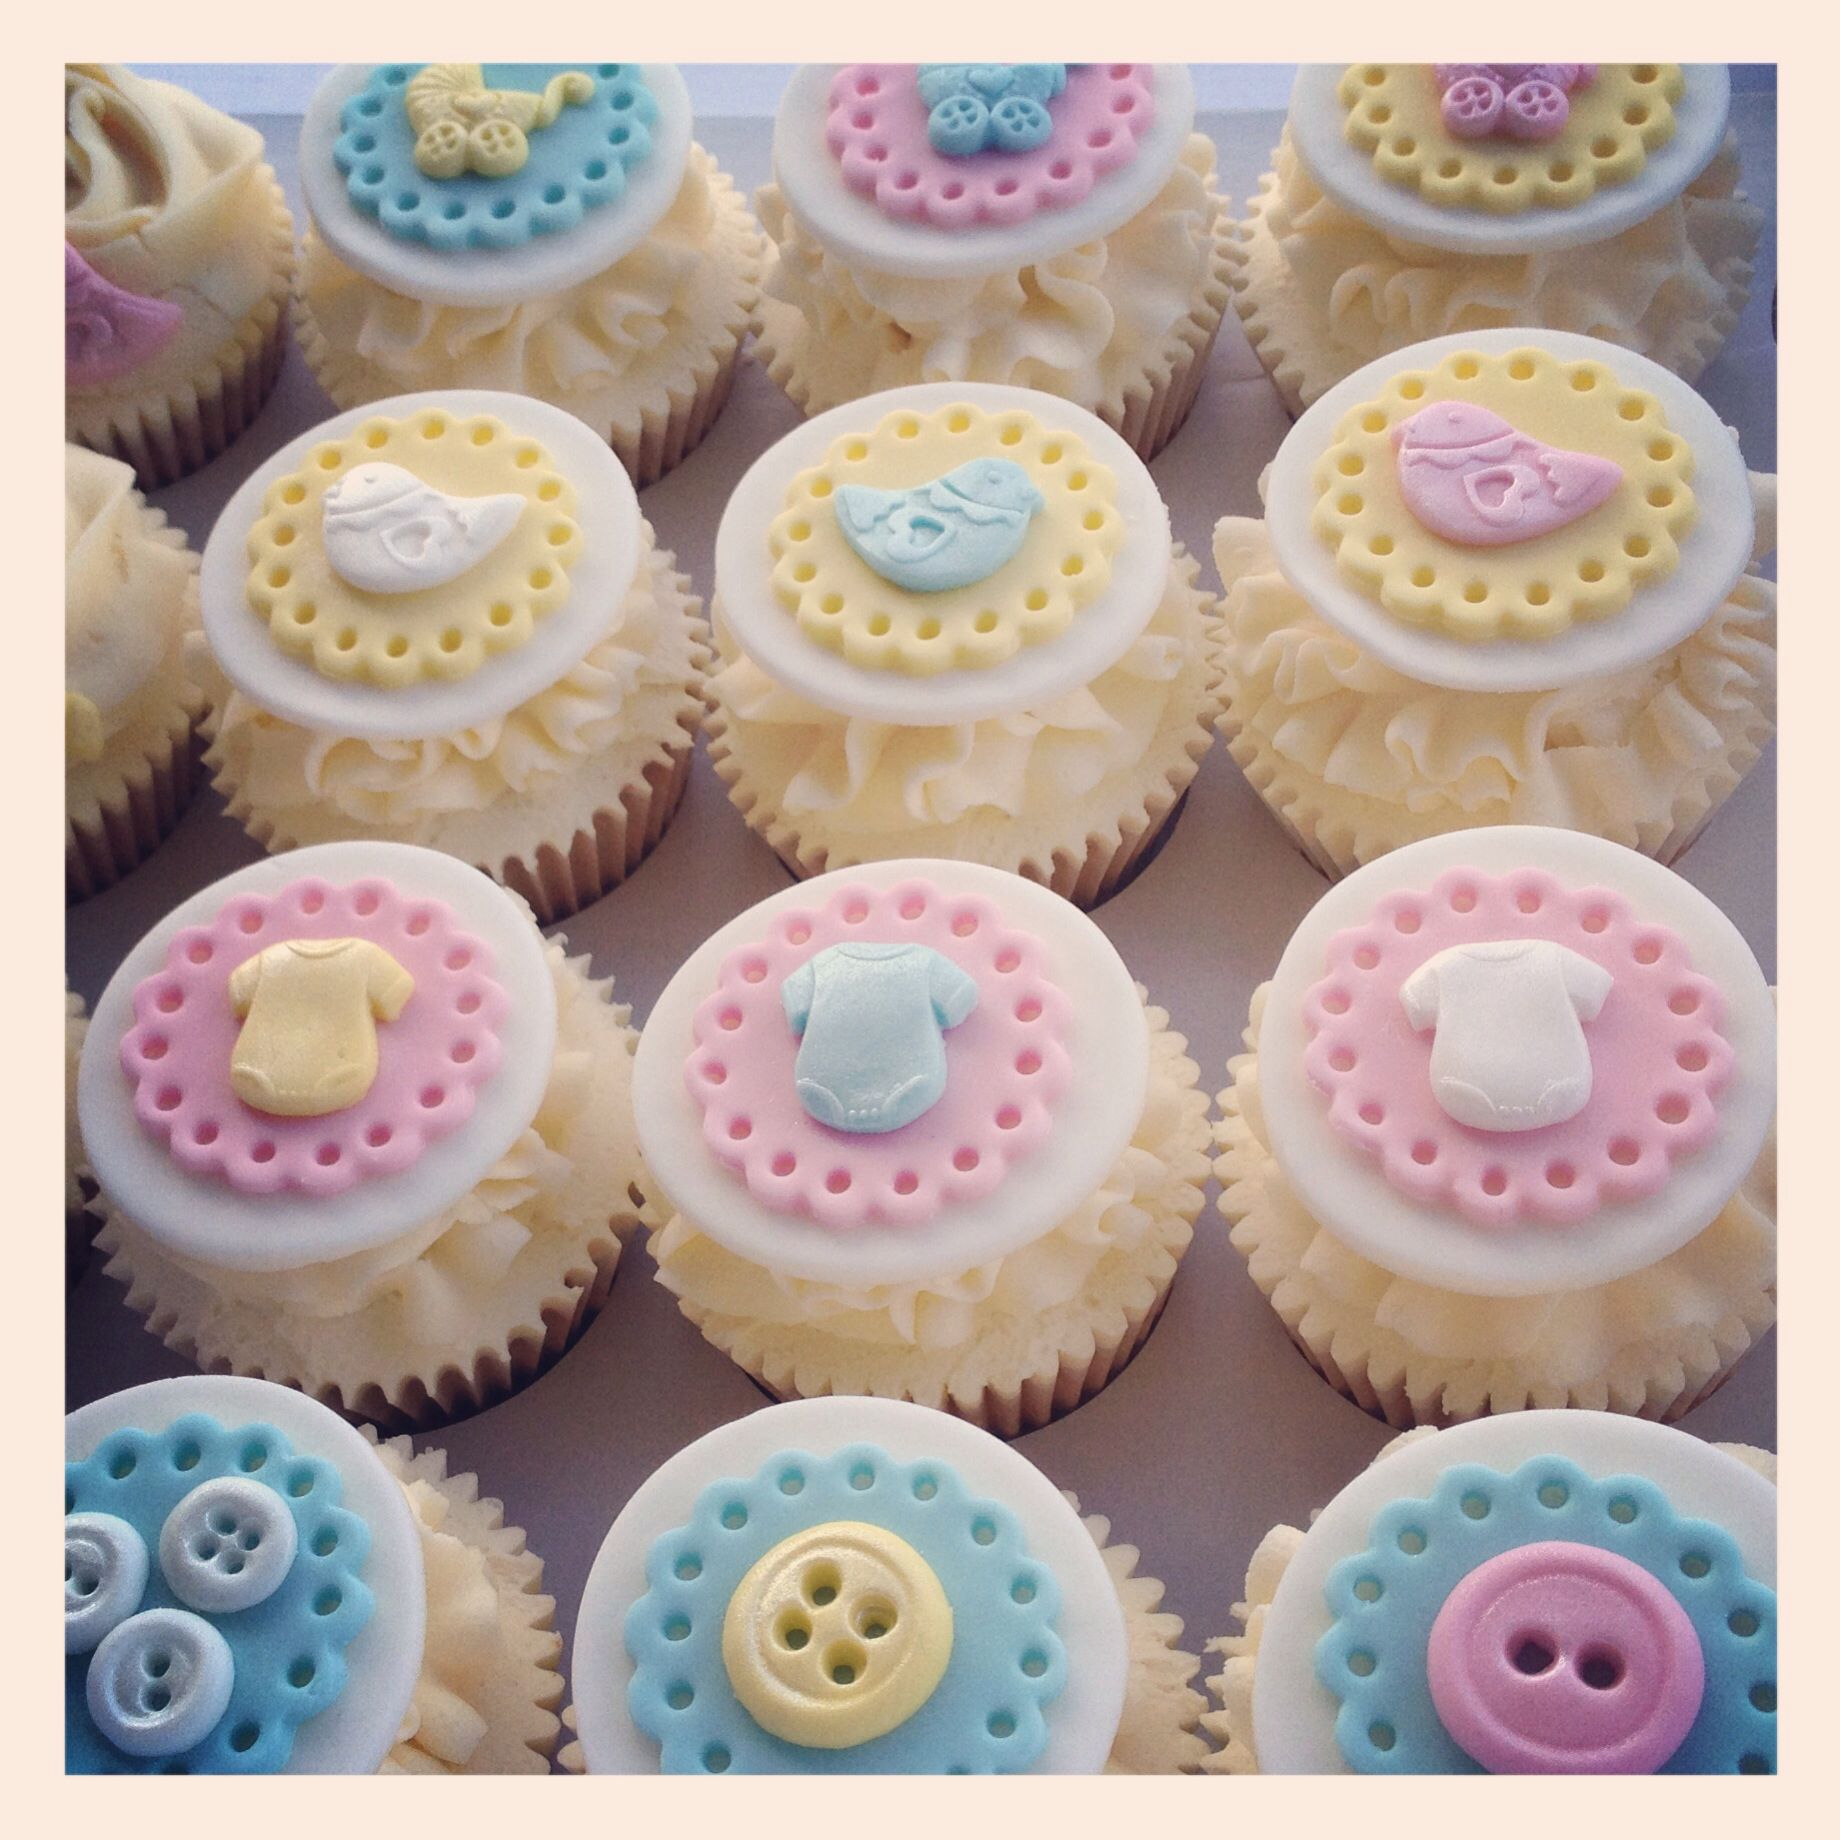 Baby Dummies Buttons Cupcakes Pink Blue Babyshower Pregnancy